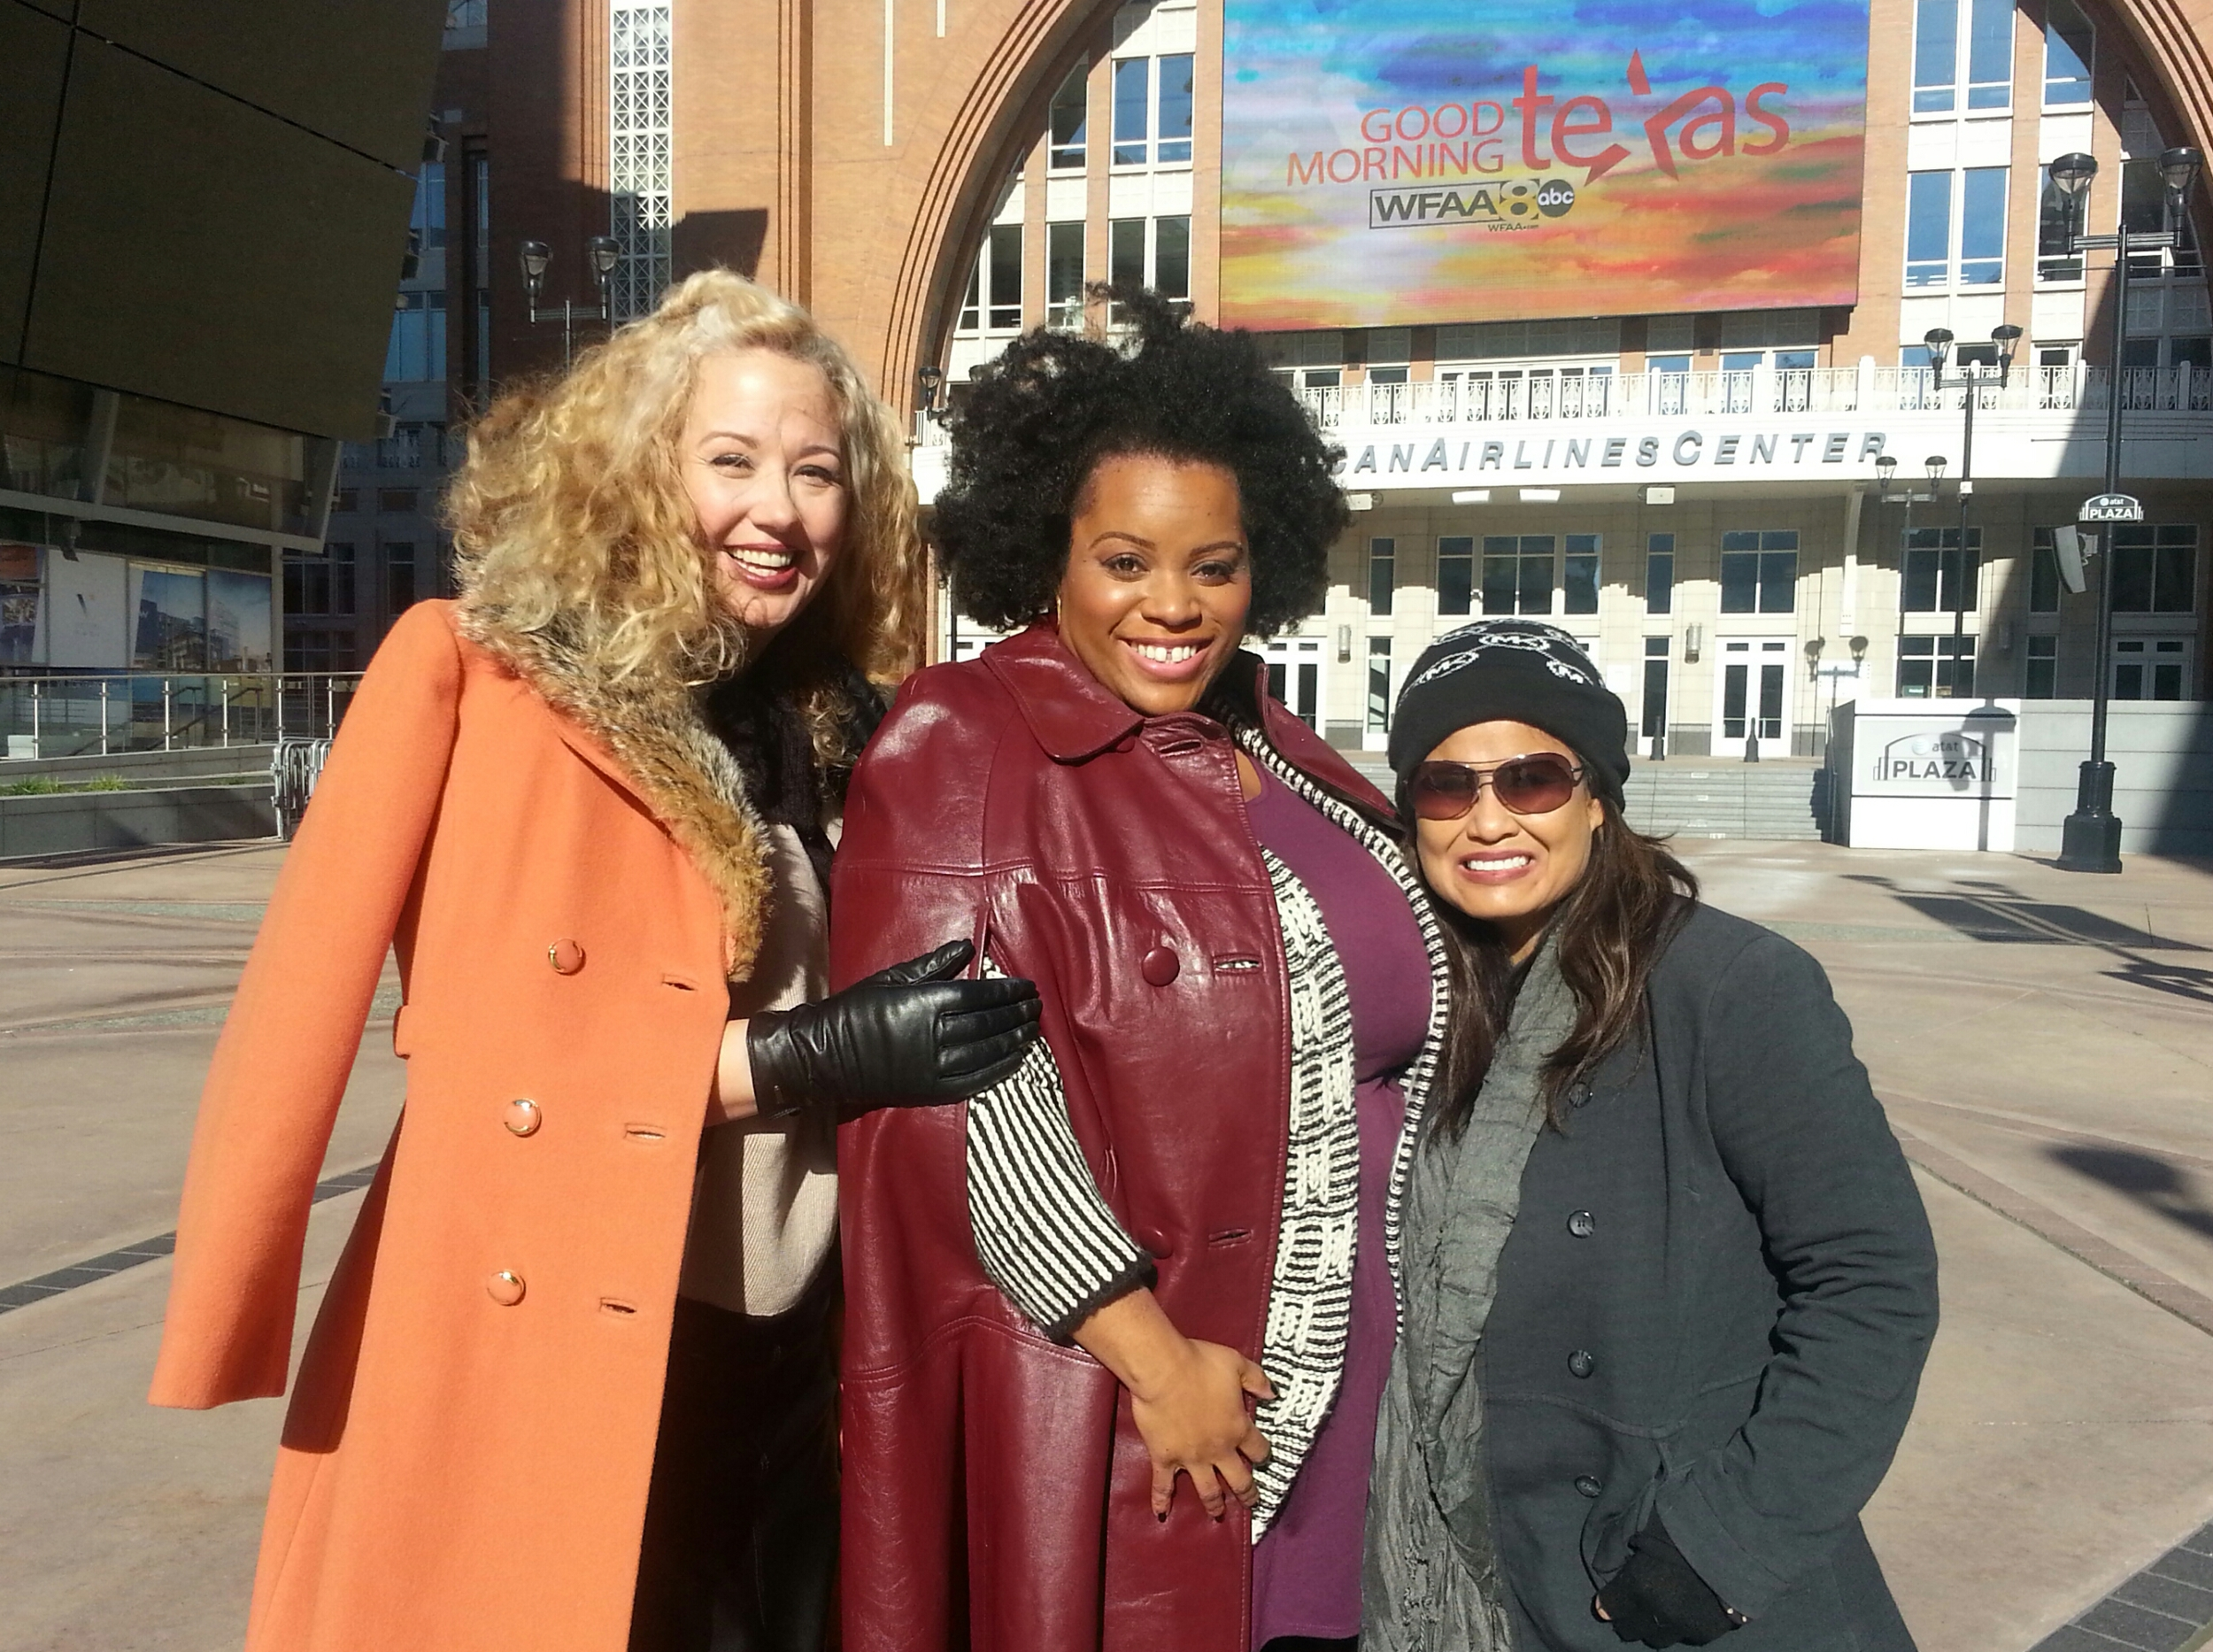 With Dallas stylist, Jeannette Chivvis and Hair/Makeup Artist, Paige Anderson after 'Good Morning Texas' in my 'Oxblood' leather cape.